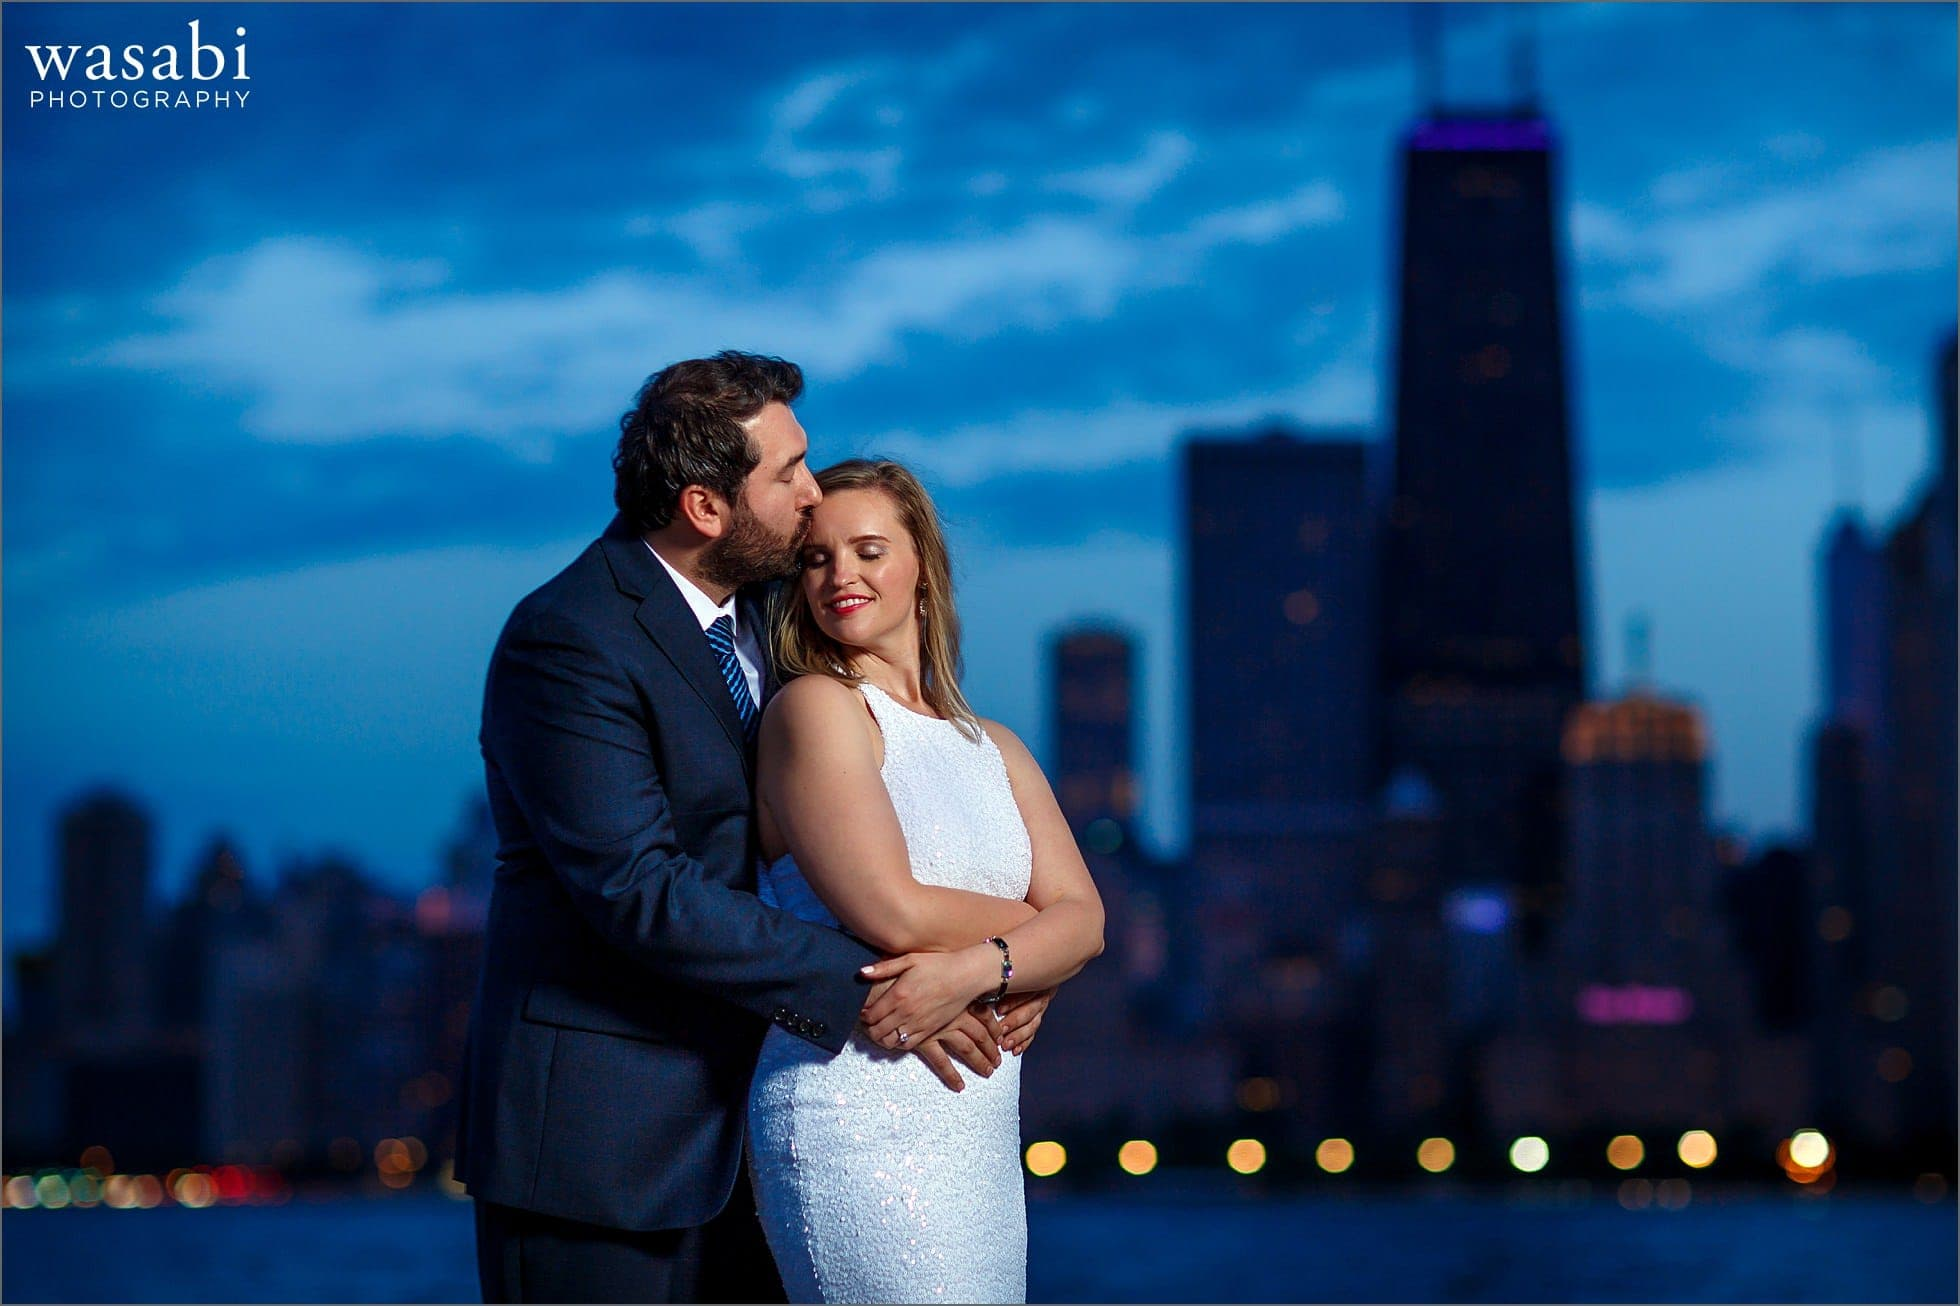 North Avenue beach engagement photos with a bride-to-be smiling during their night time engagement session with the Chicago skyline in the background